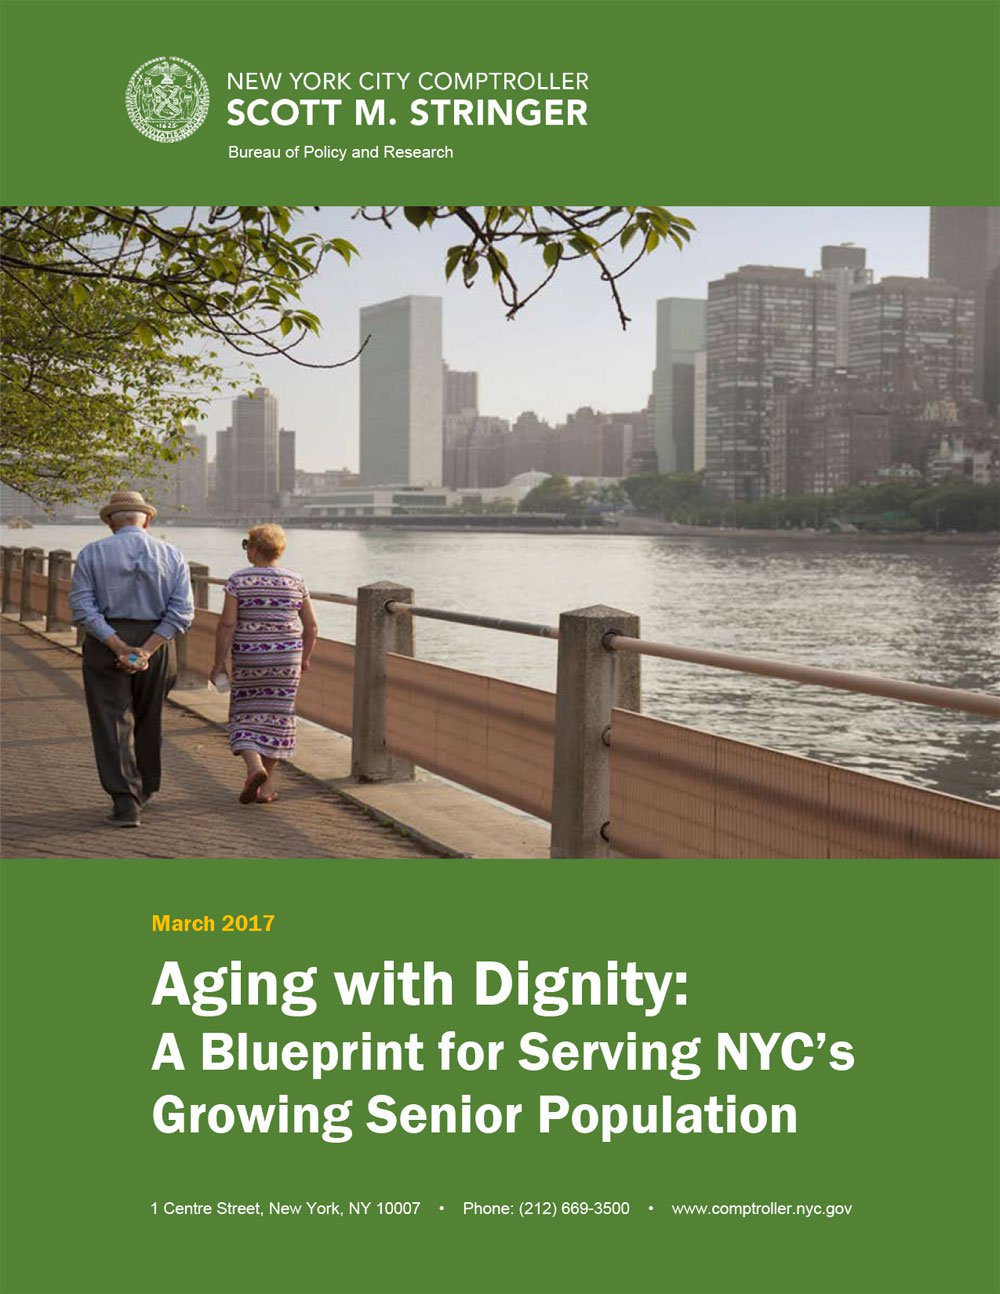 Aging with Dignity: A Blueprint for Serving NYC's Growing